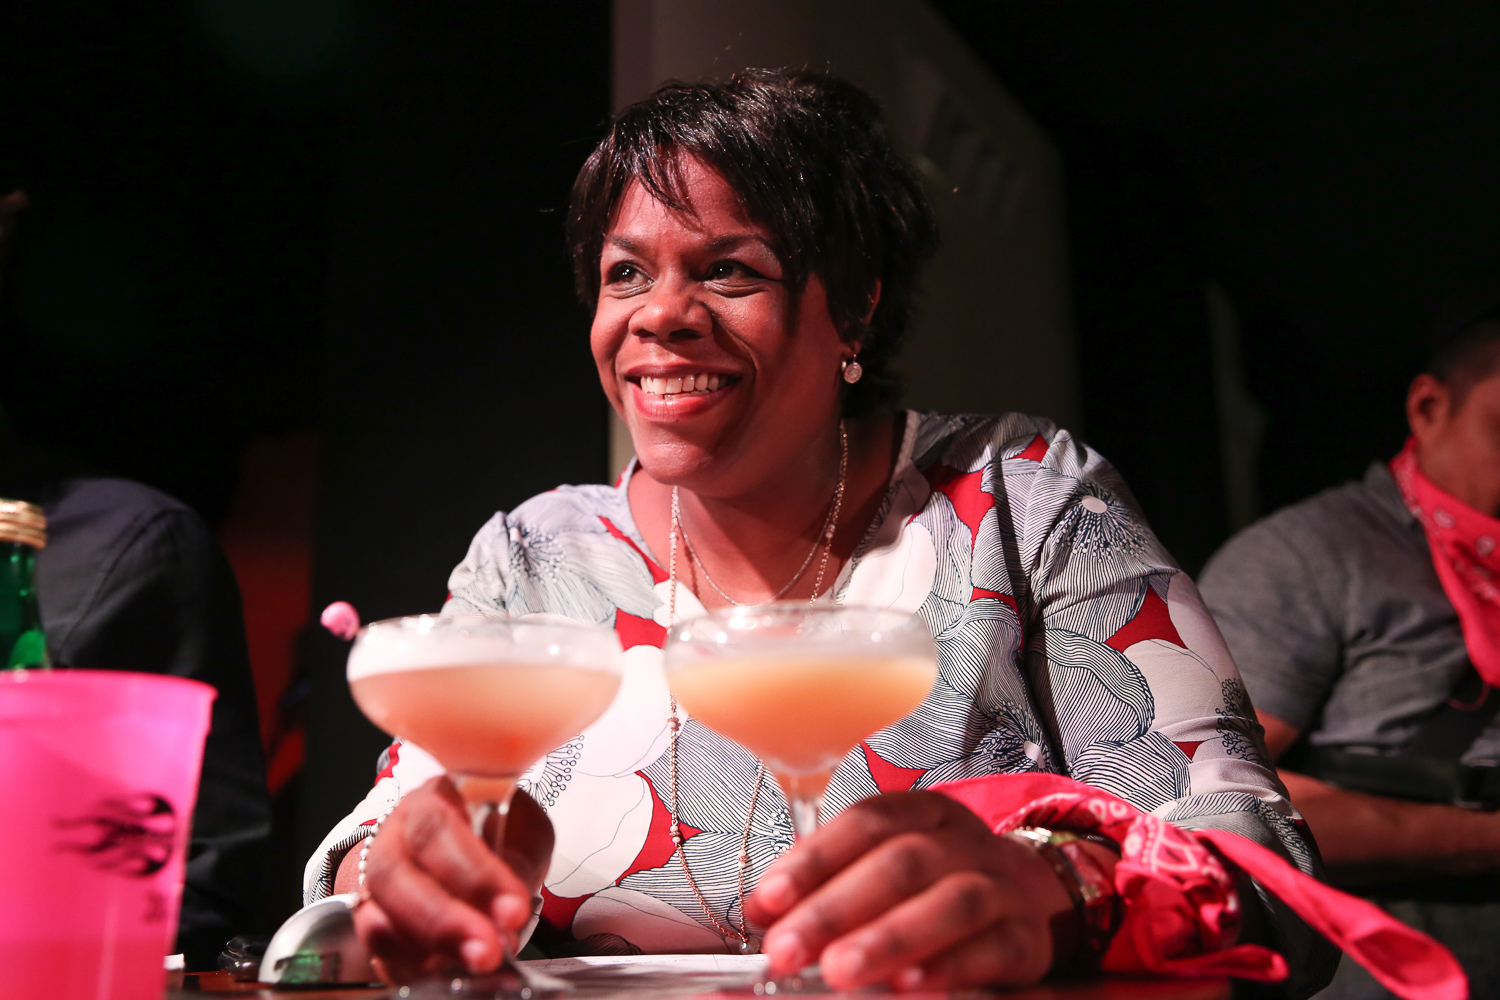 Judge Nadine Brown, a noted sommelier. (Amanda Andrade-Rhoades/DC Refined)